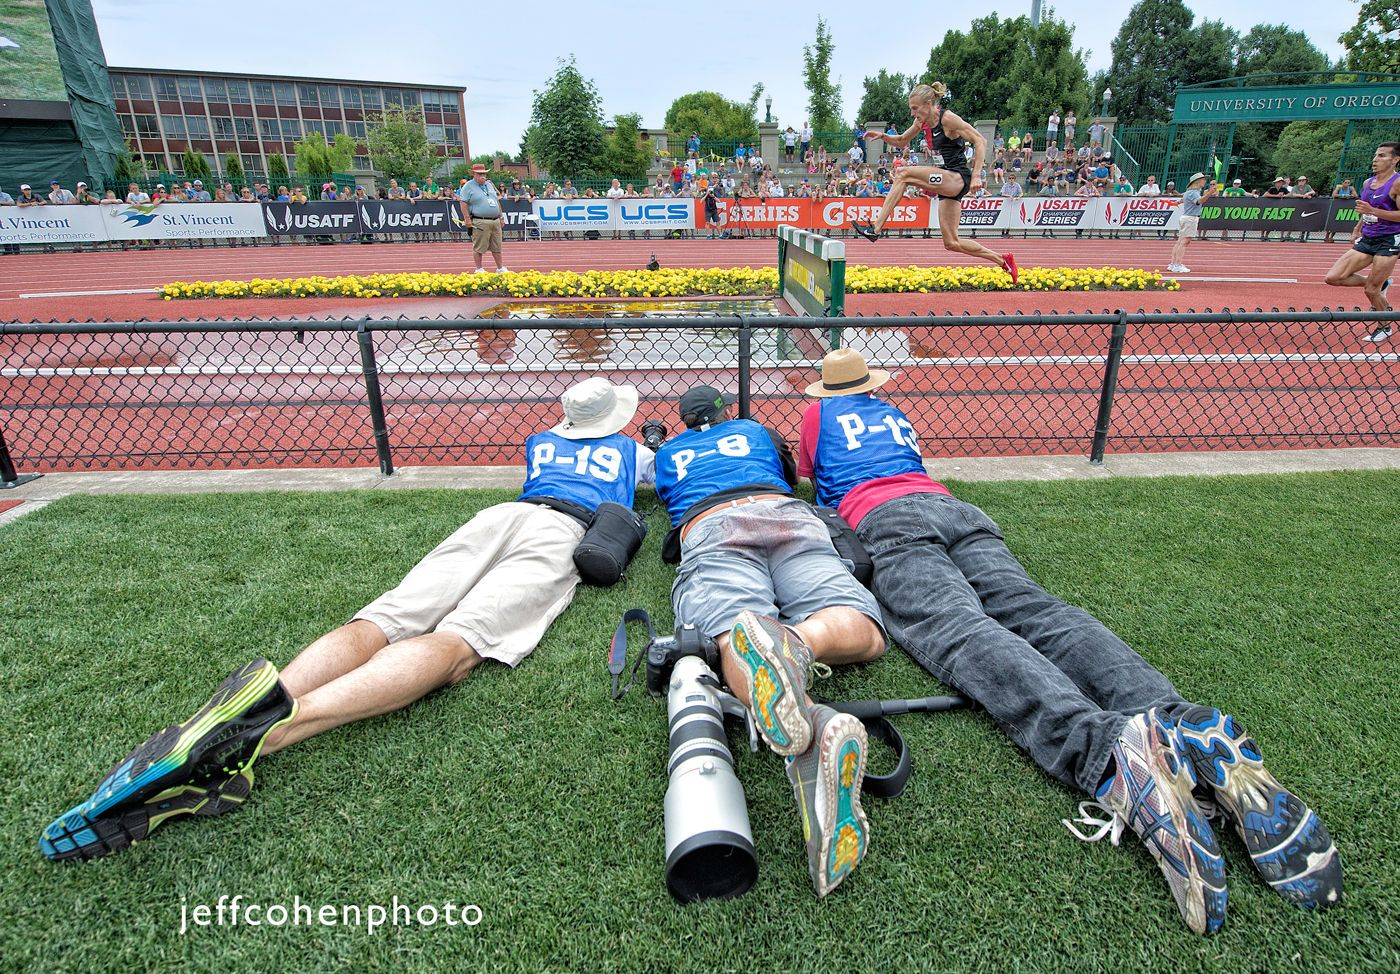 1r2015_usaoutdoors_day_4_evan_jager_photogs_jeff_cohen_0577__web.jpg